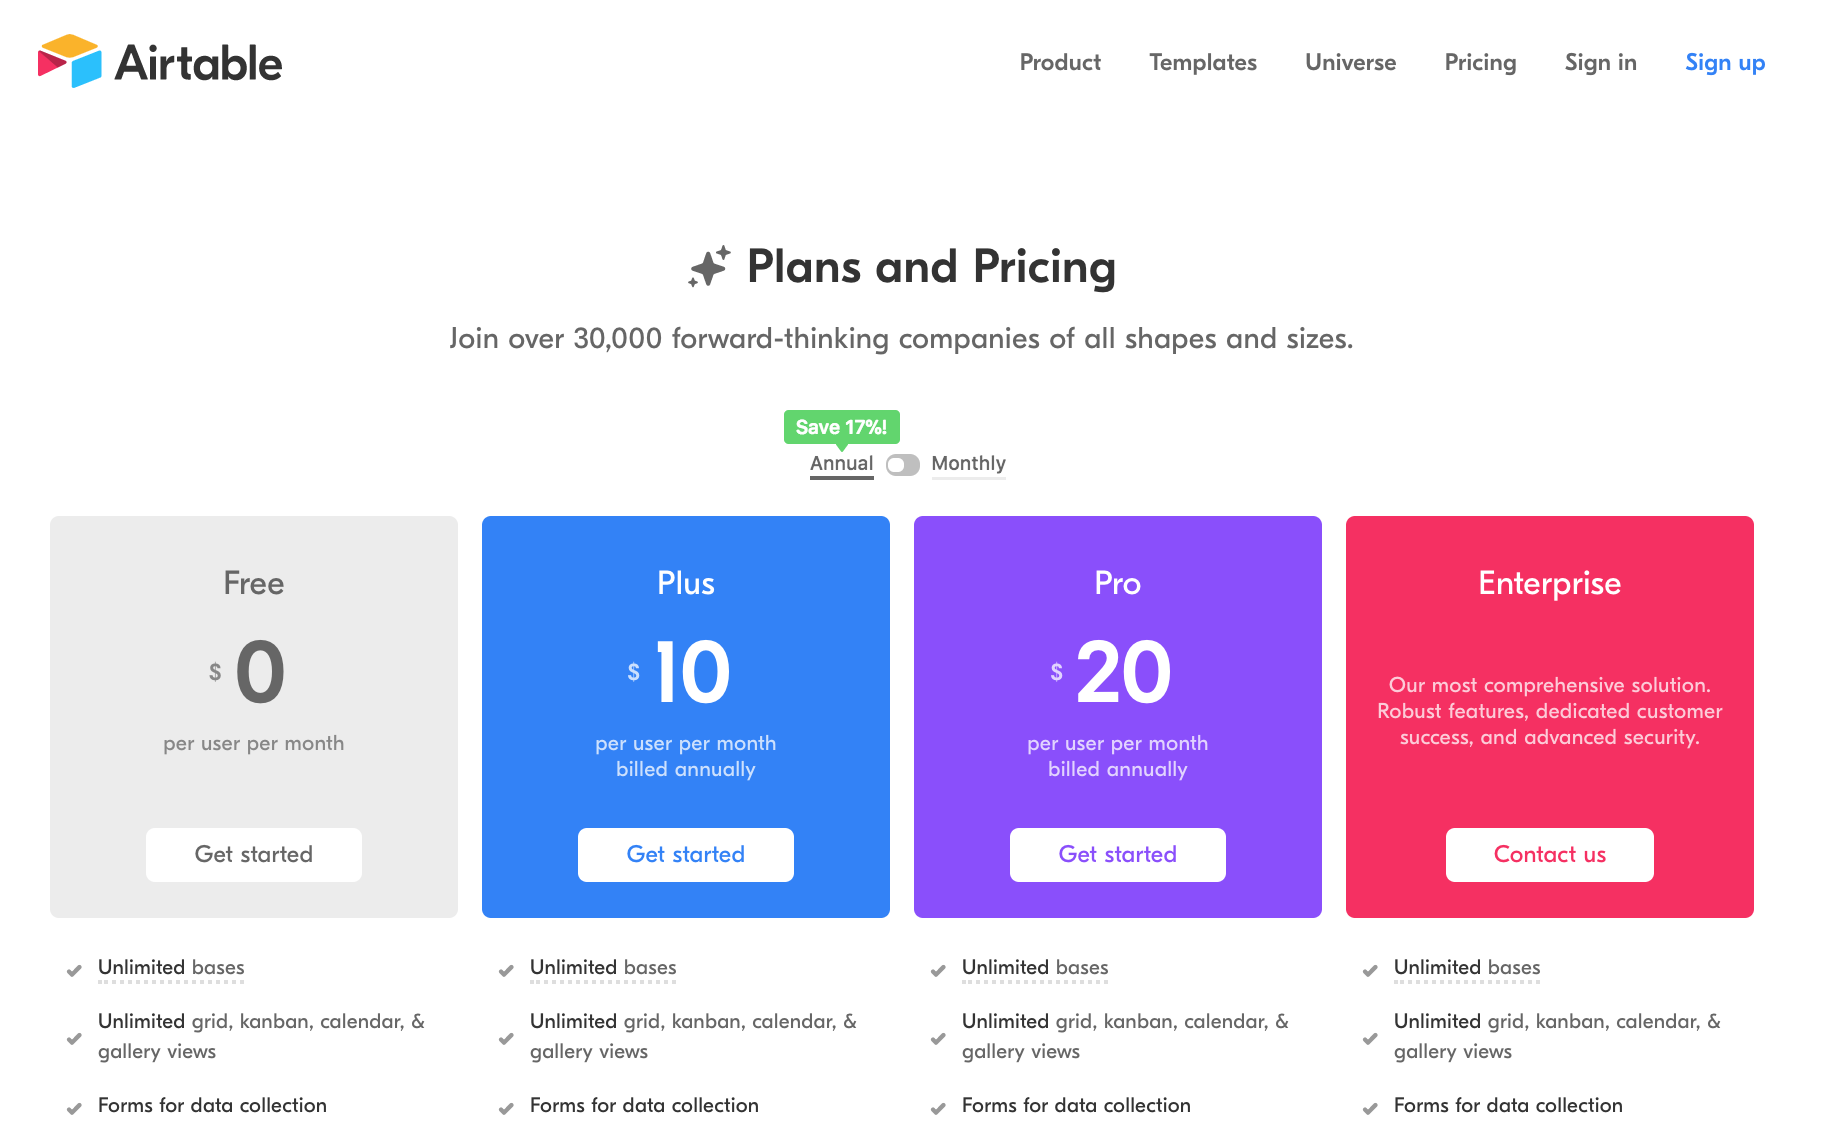 A screenshot of Airtable's pricing page (Feb 2018) shows a potential point of friction along the user journey